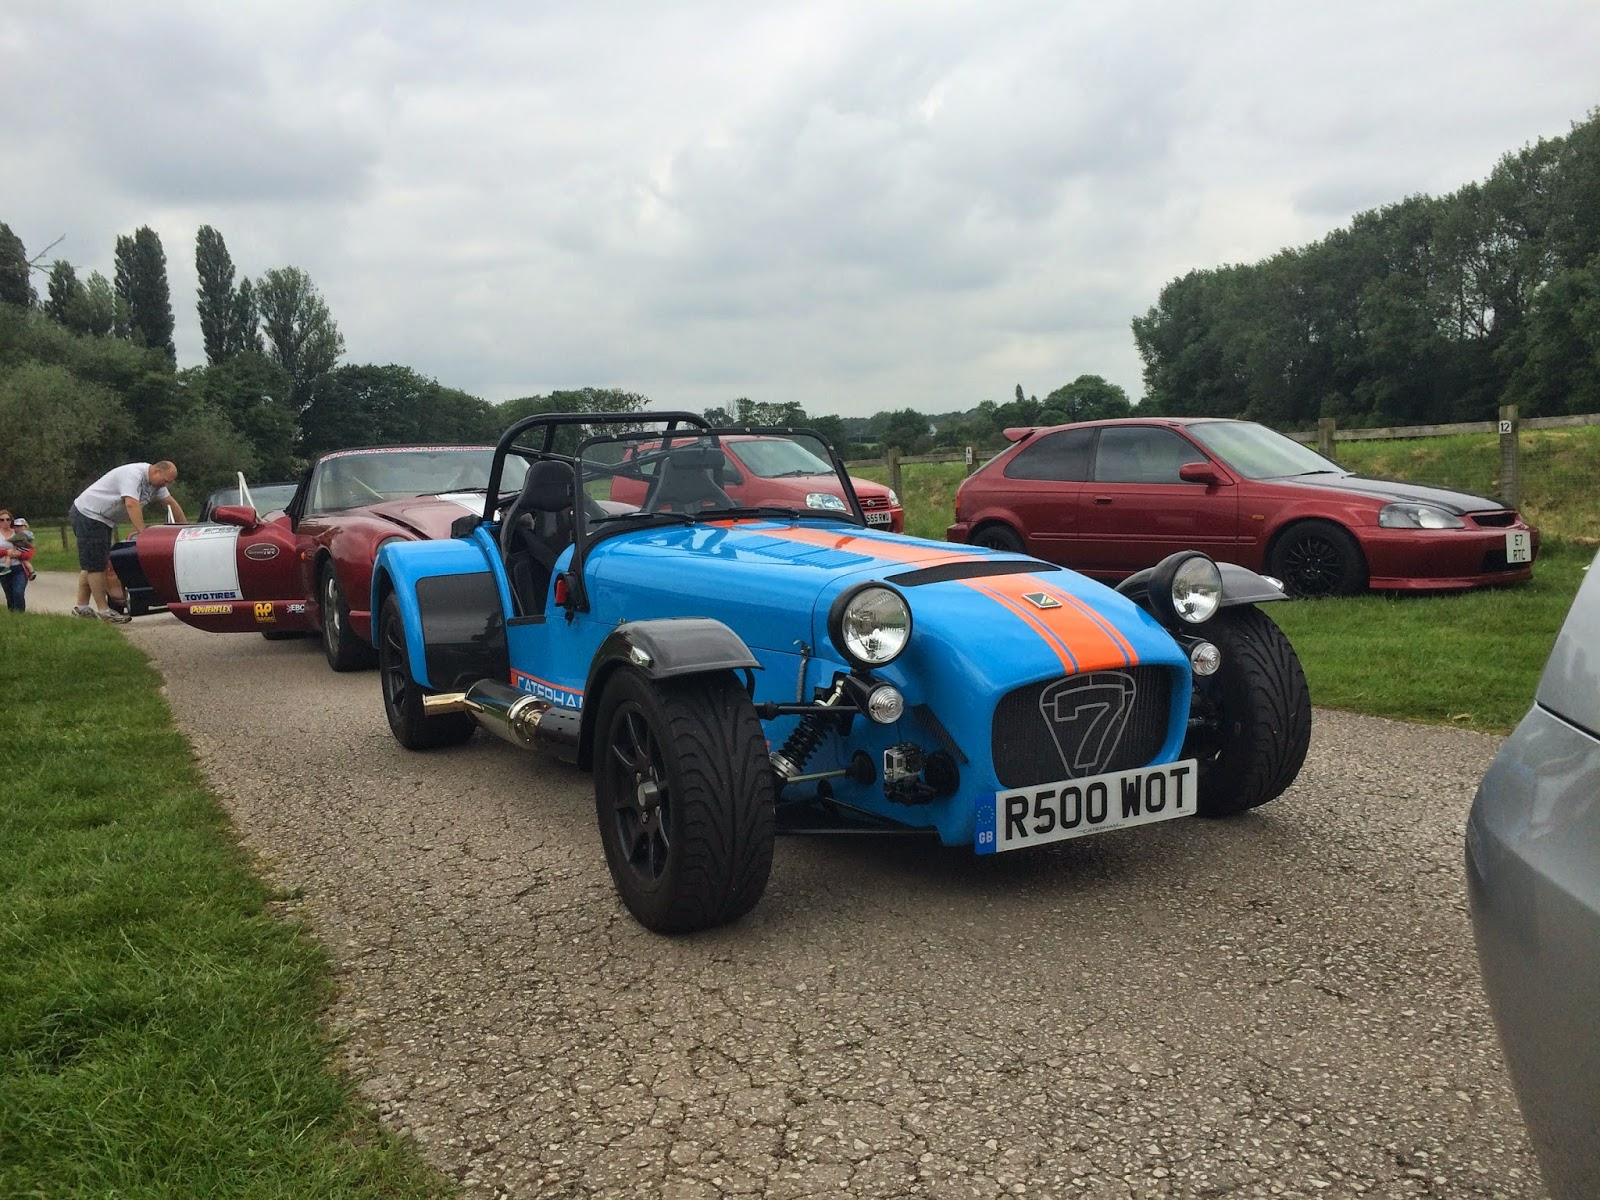 My Caterham R500 at Curborough Sprint Course